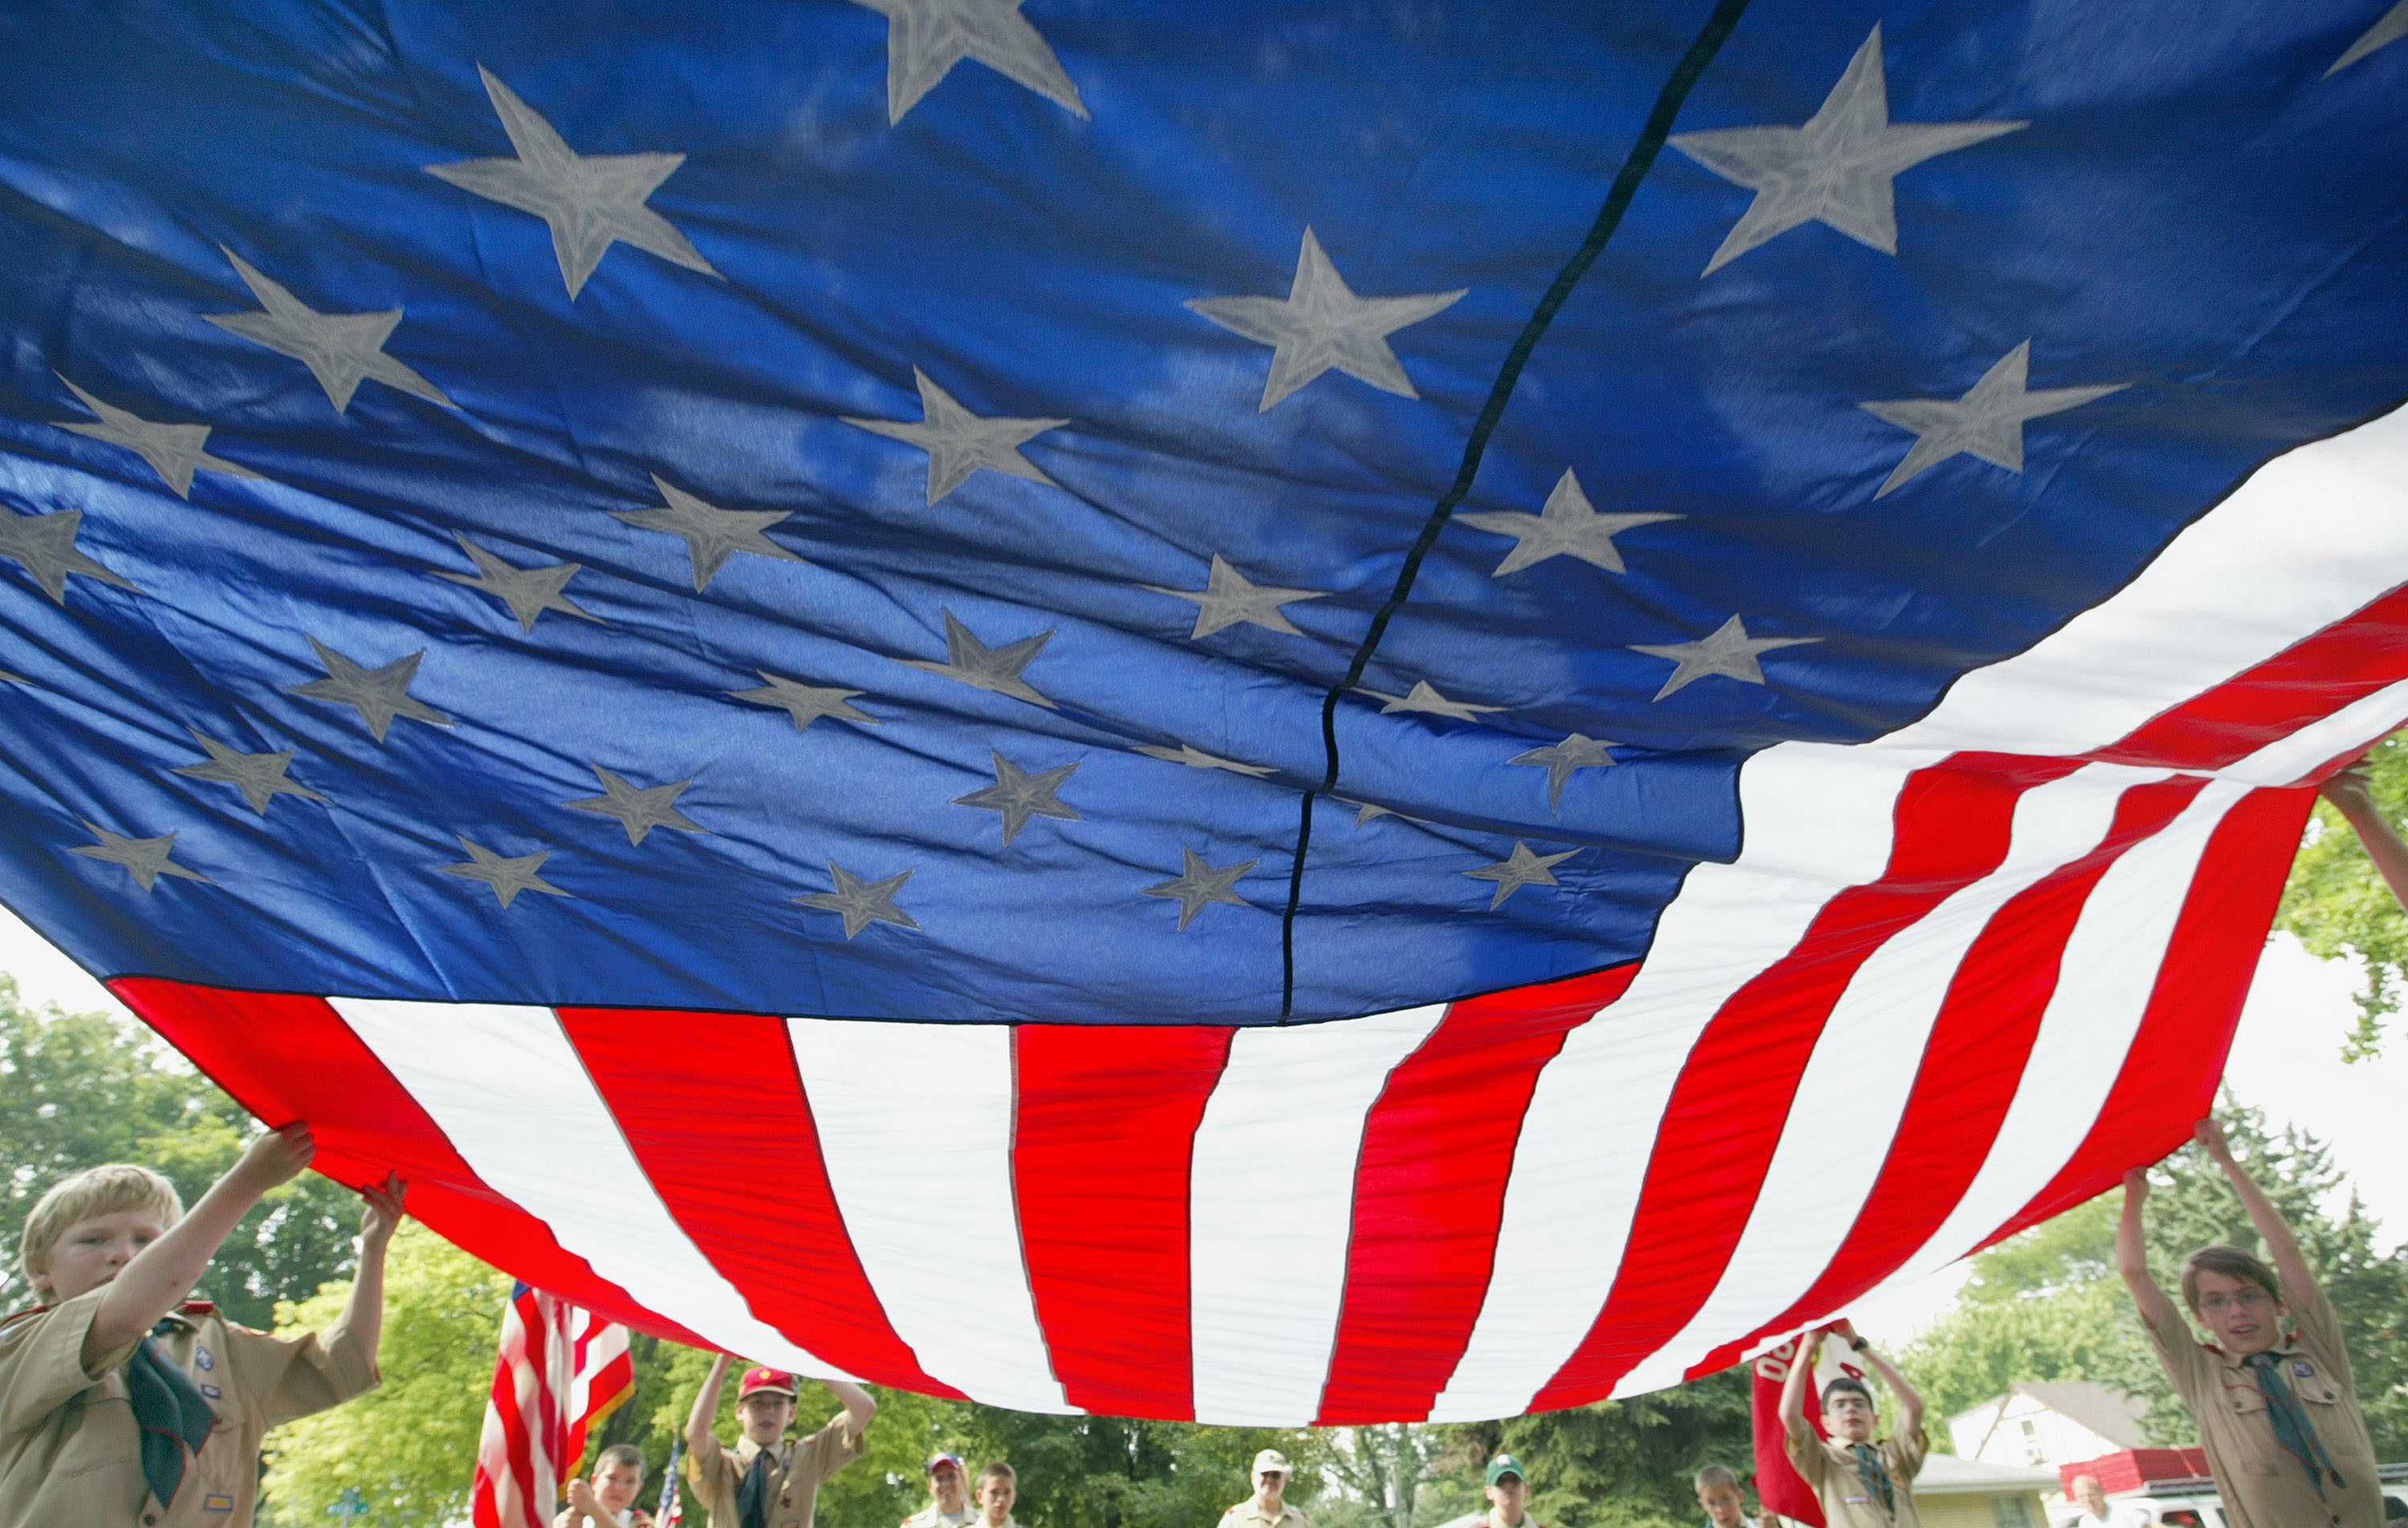 Meaning Of The Colors In The American Flag